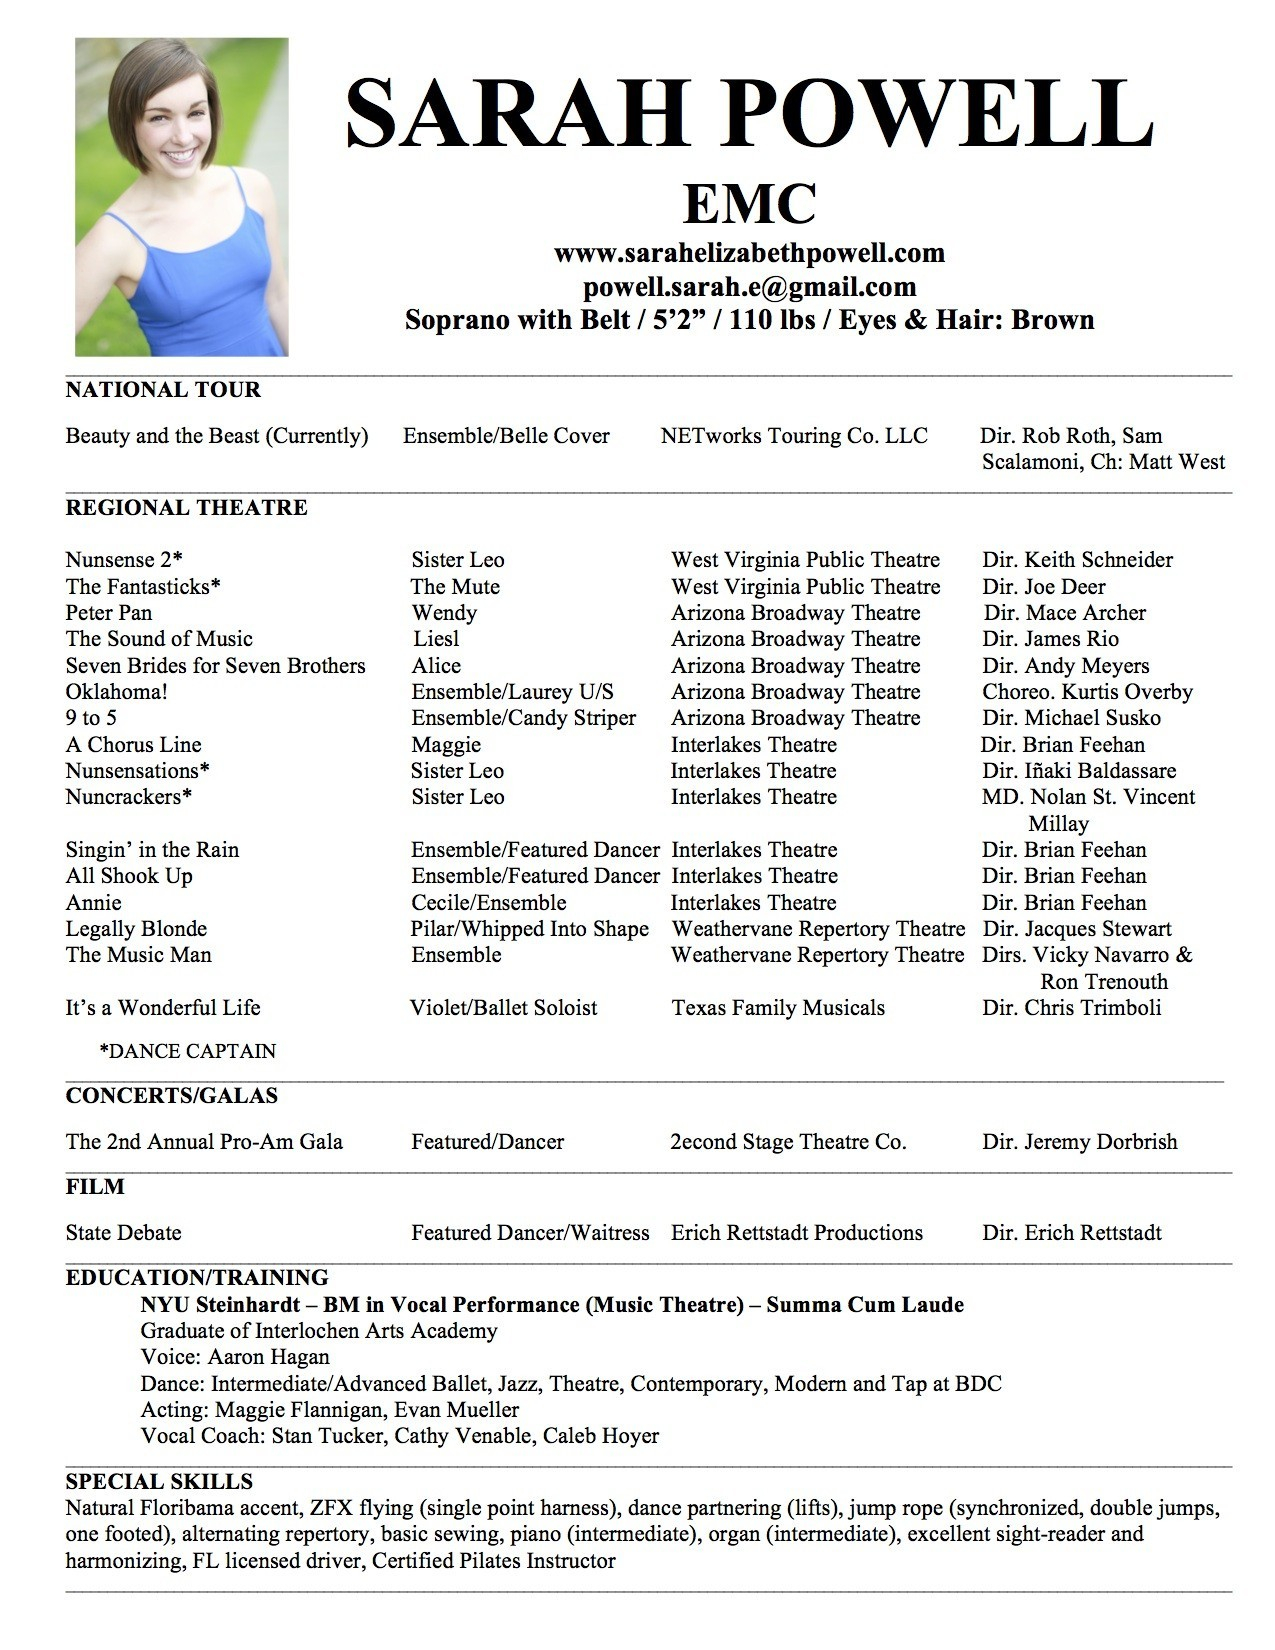 Resume the Music - Music Resume Template Unique Template for Resume Best College Resume